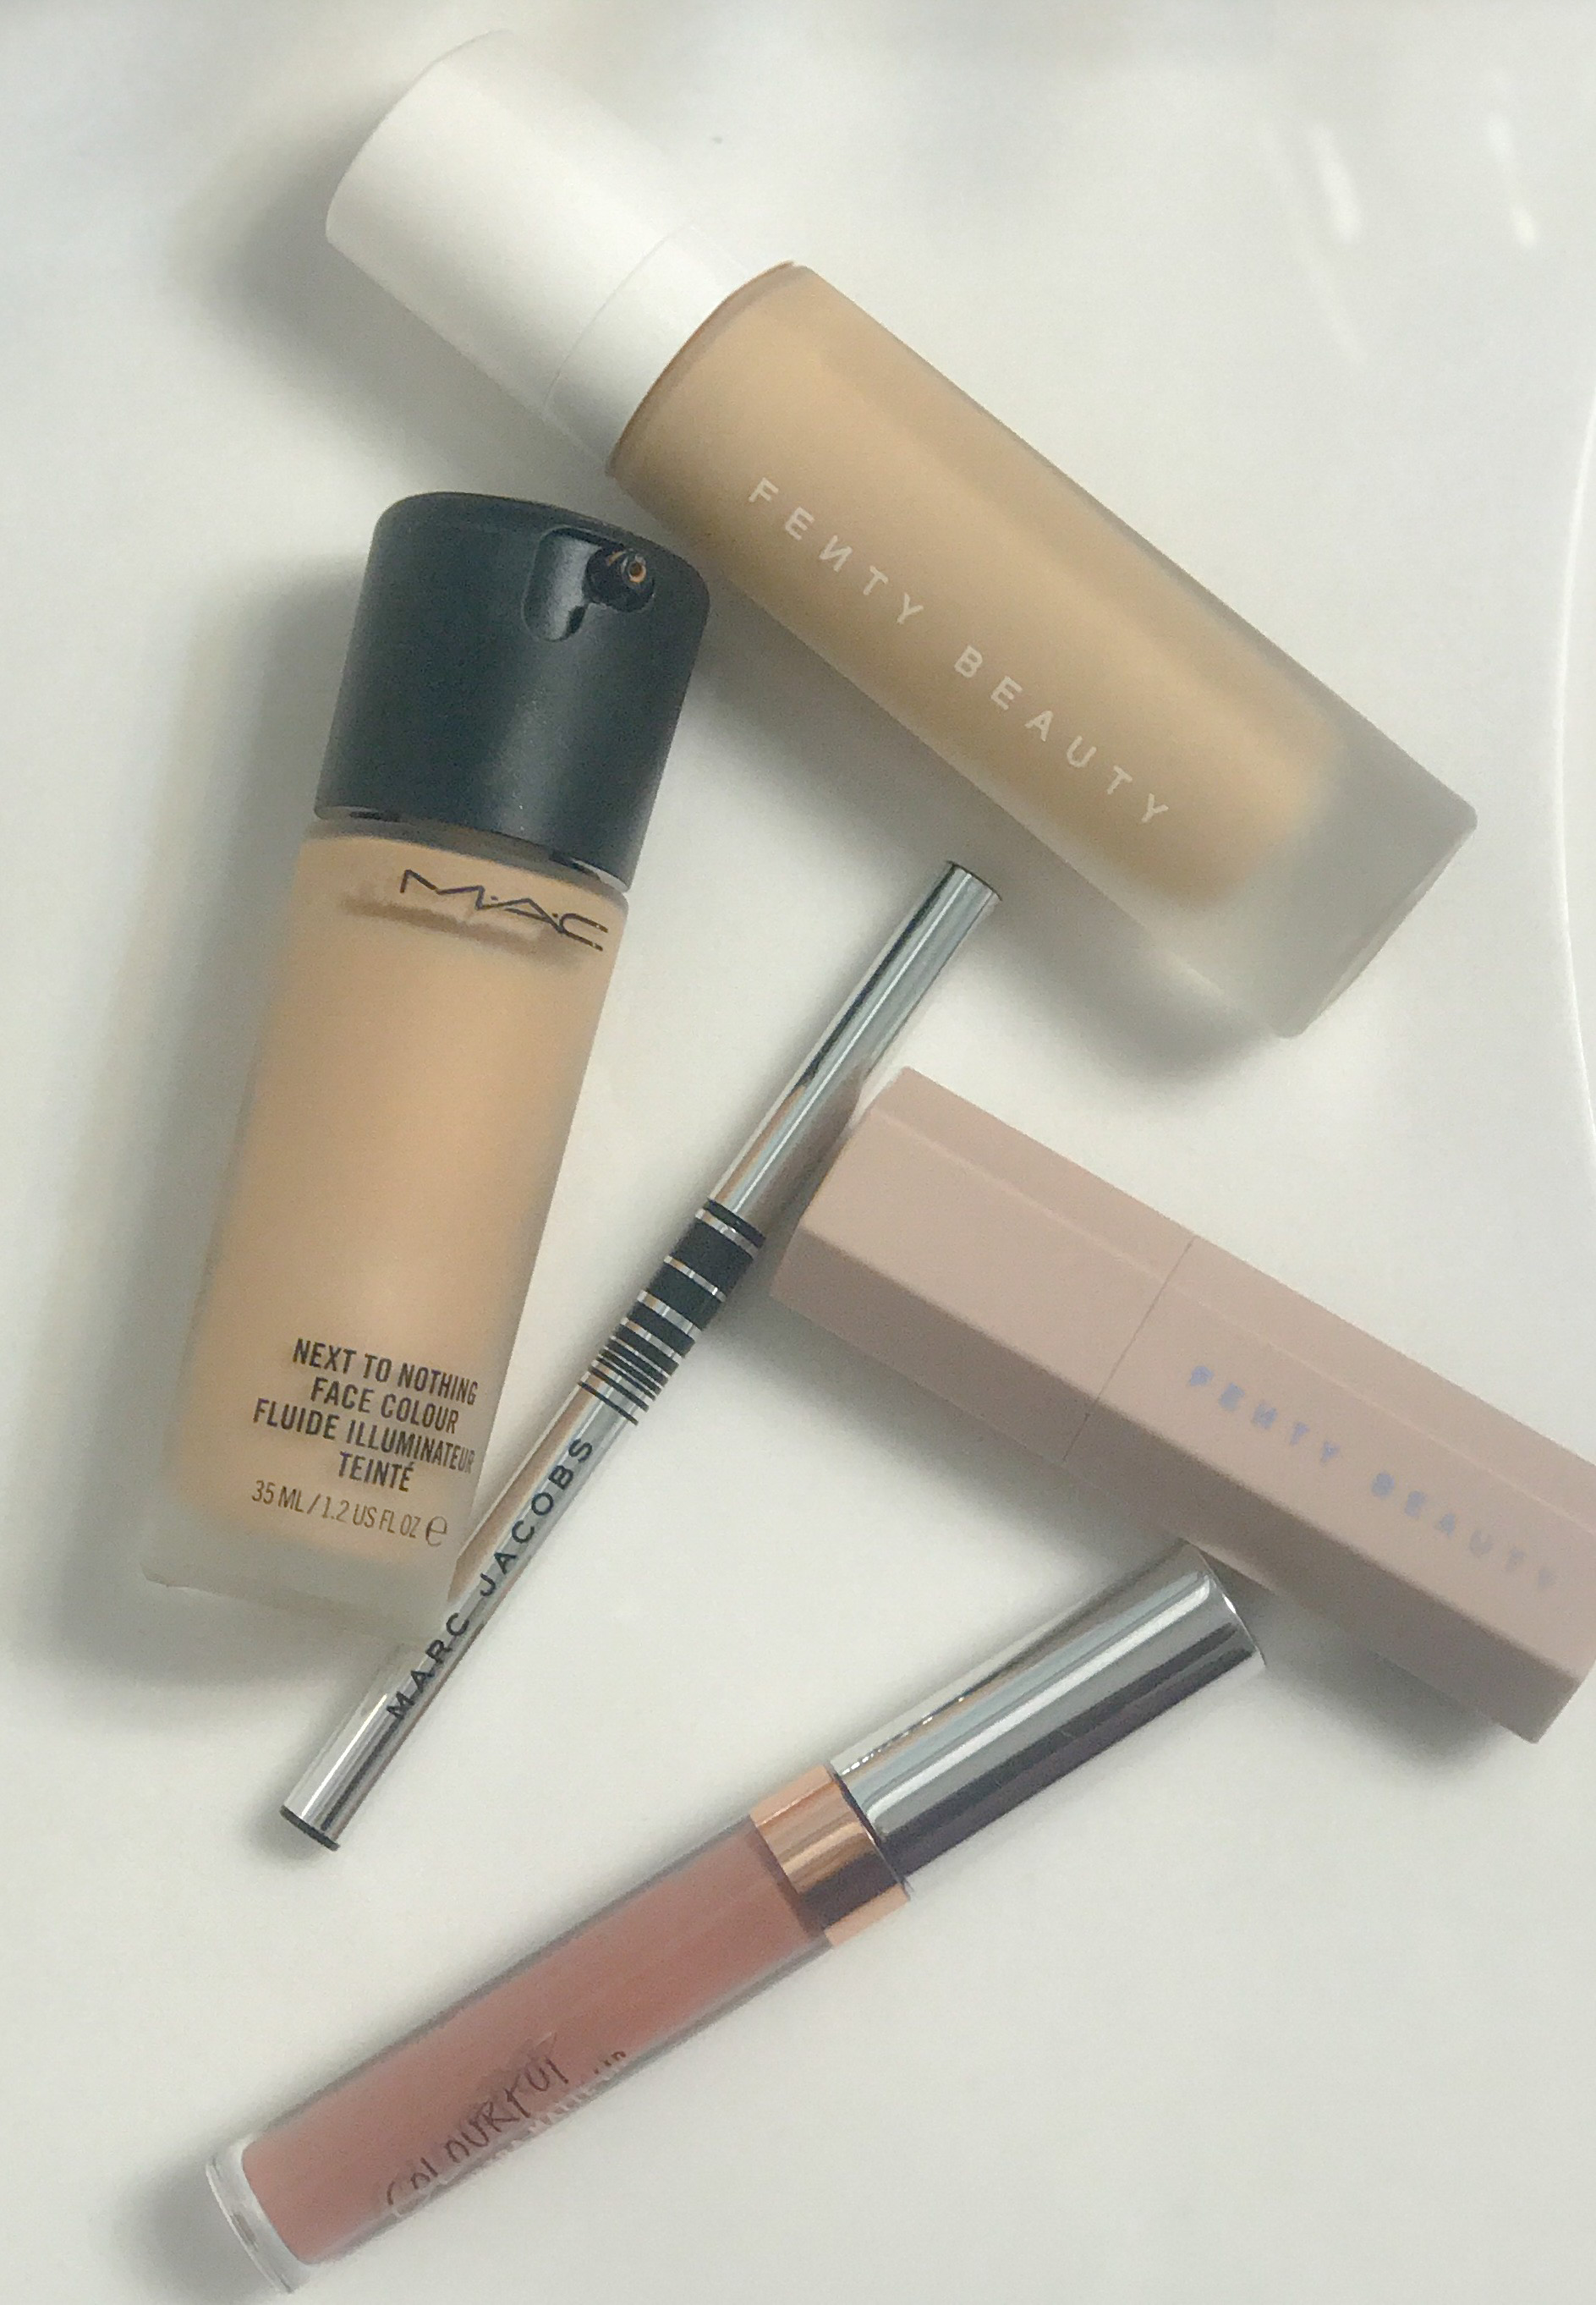 FIVE FAVE BEAUTY PRODUCTS